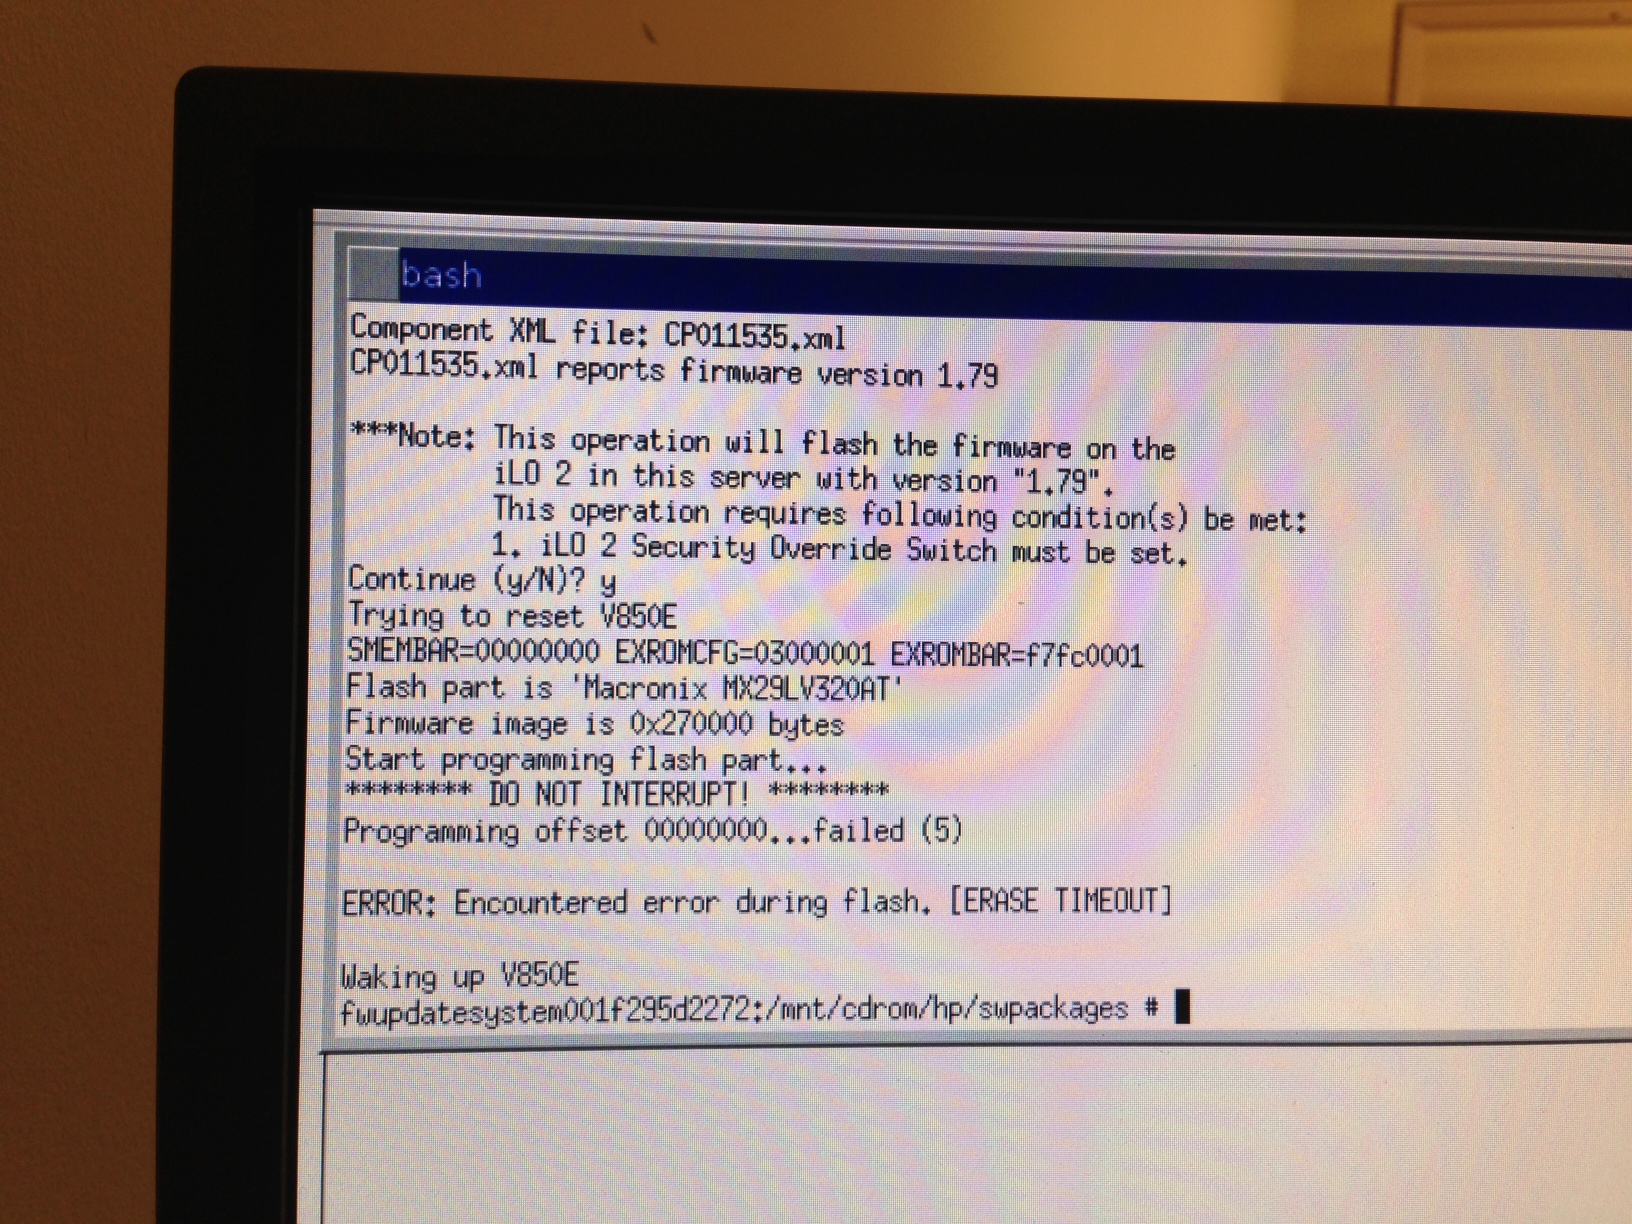 Recovery for non-functioning iLO2 firmware fails - Hewlett Packard